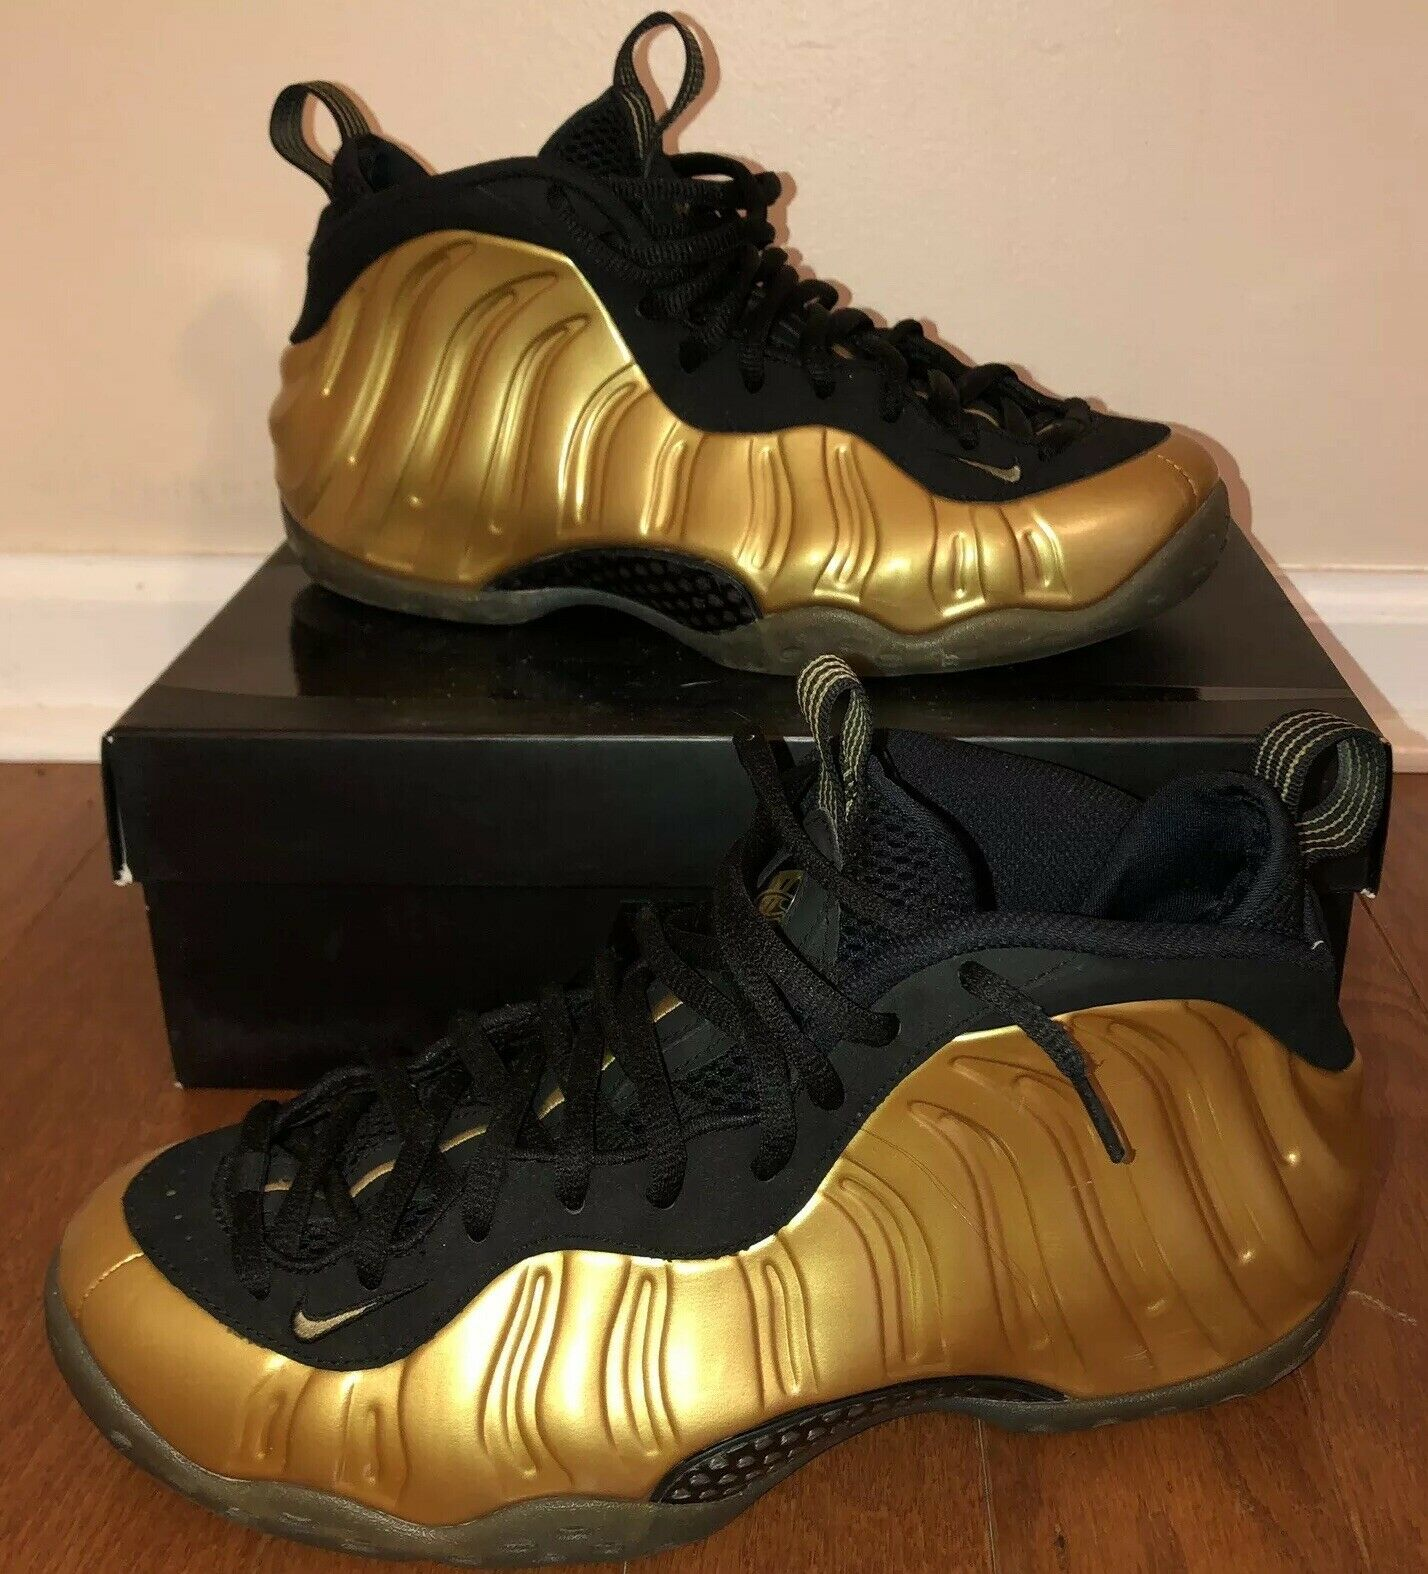 Nike Air Foamposite One Metallic gold Size 10 EUC